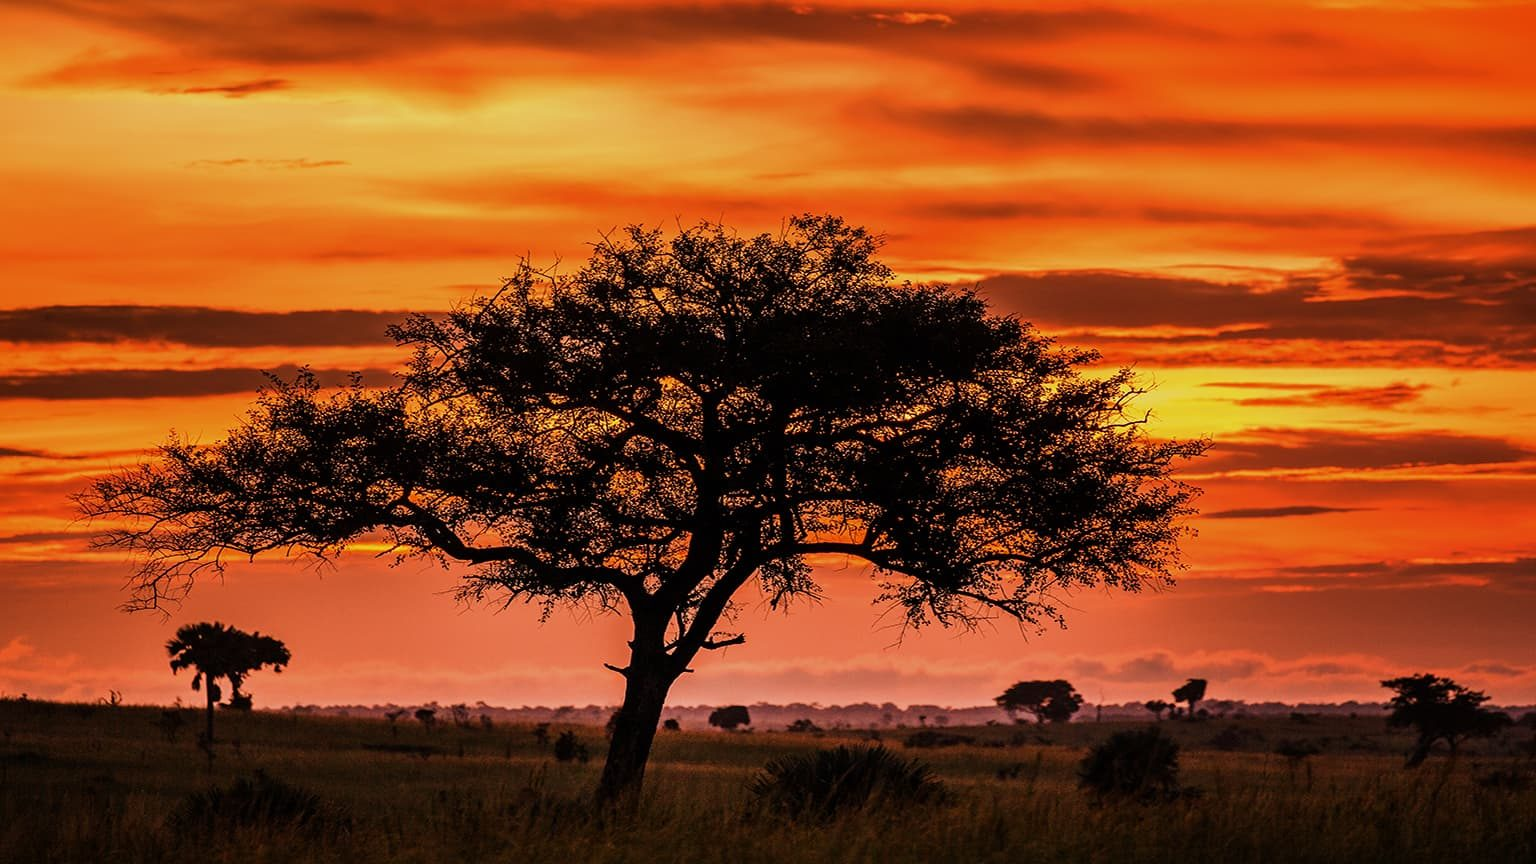 Sunset in Murchison Falls National Park, Uganda